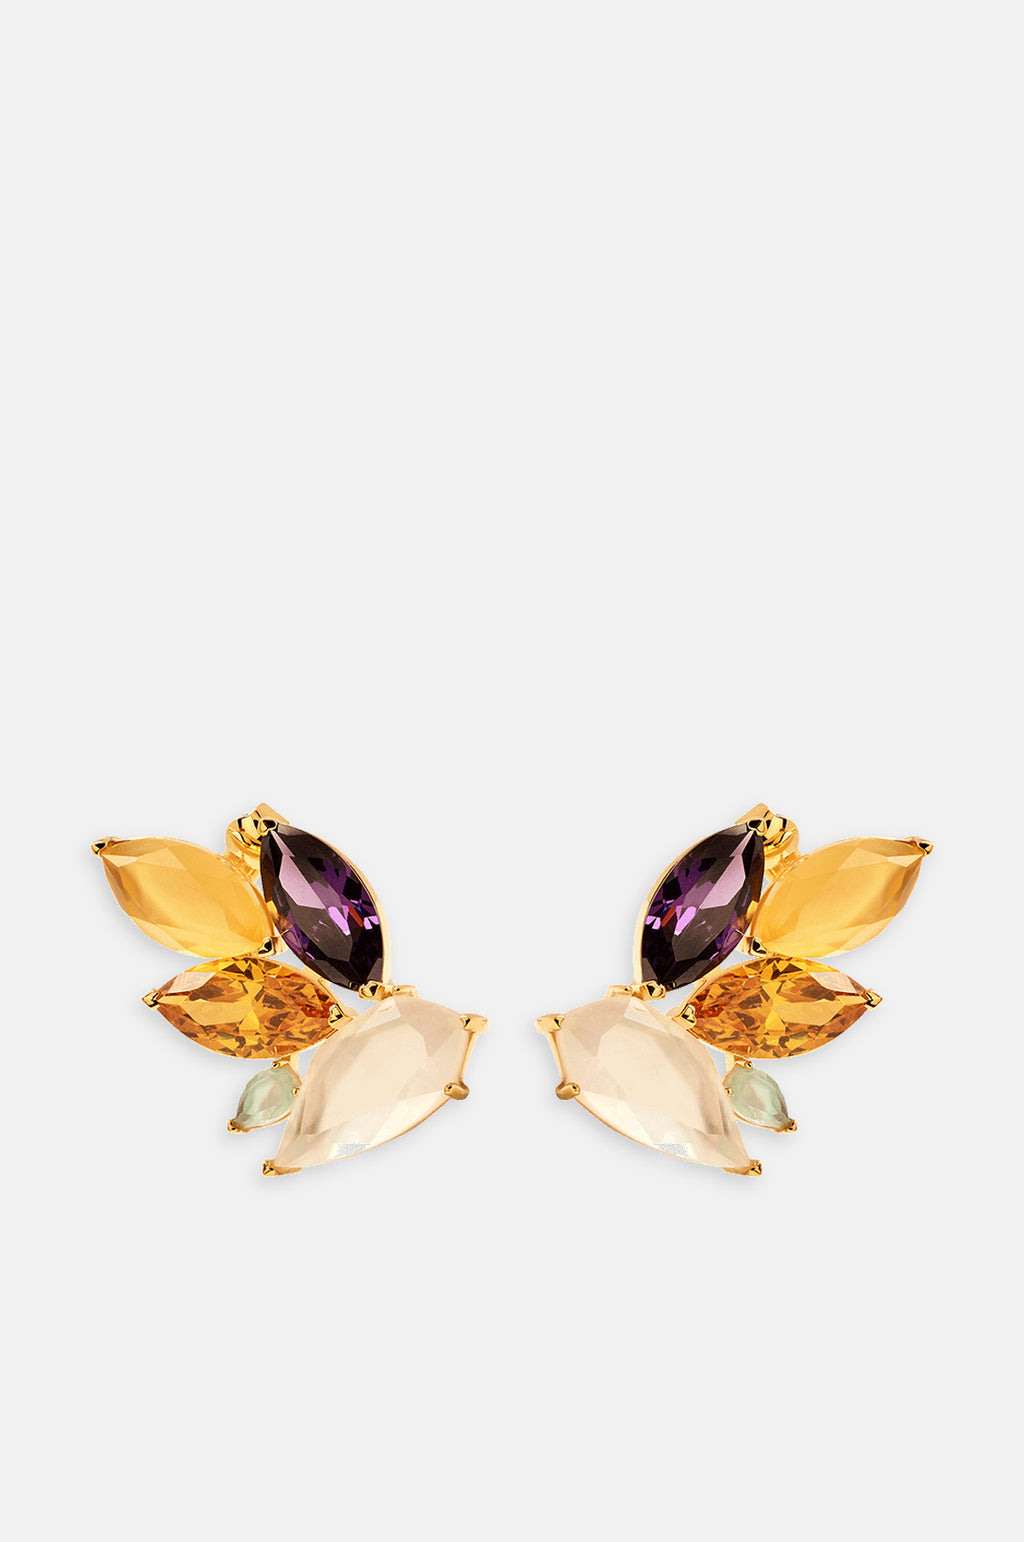 Citric Gold Earrings